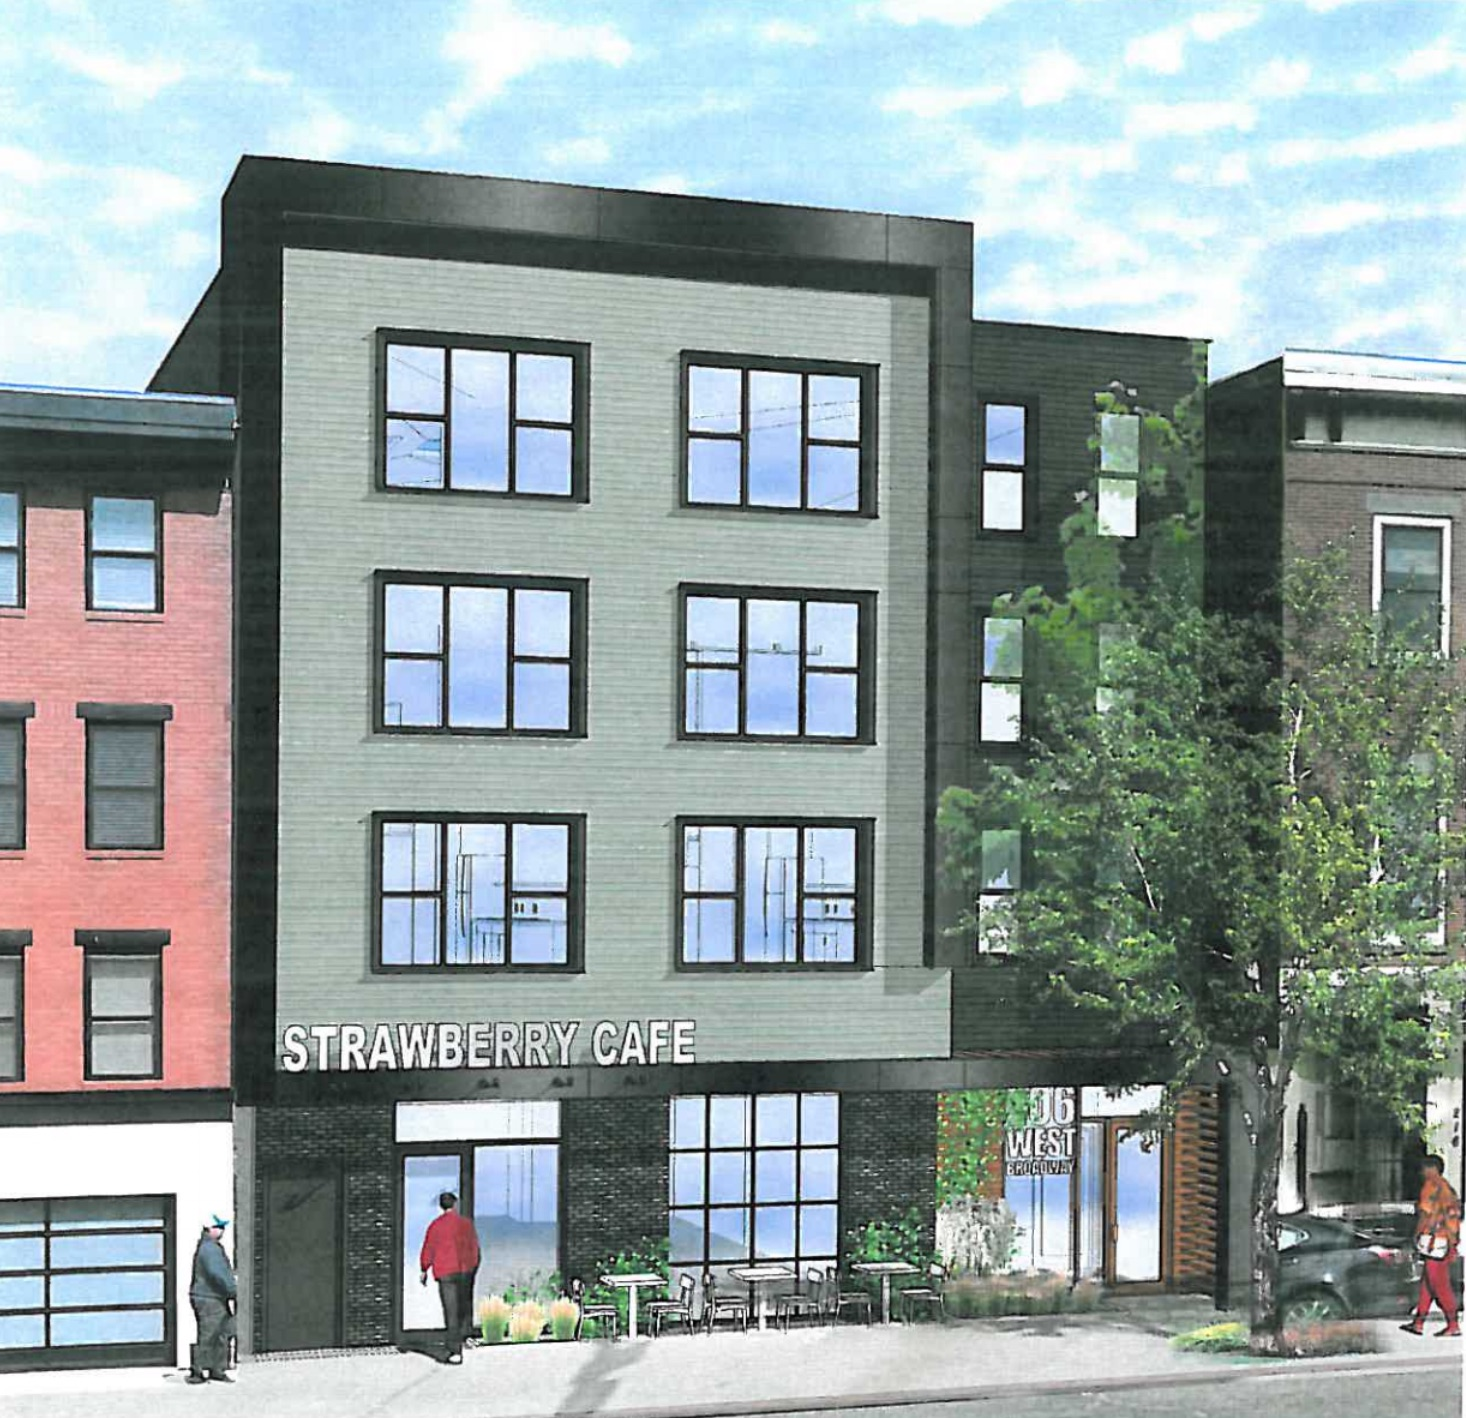 206 west broadway residential retail project south boston neighborhood development corporation caritas communities davis square architects rendering